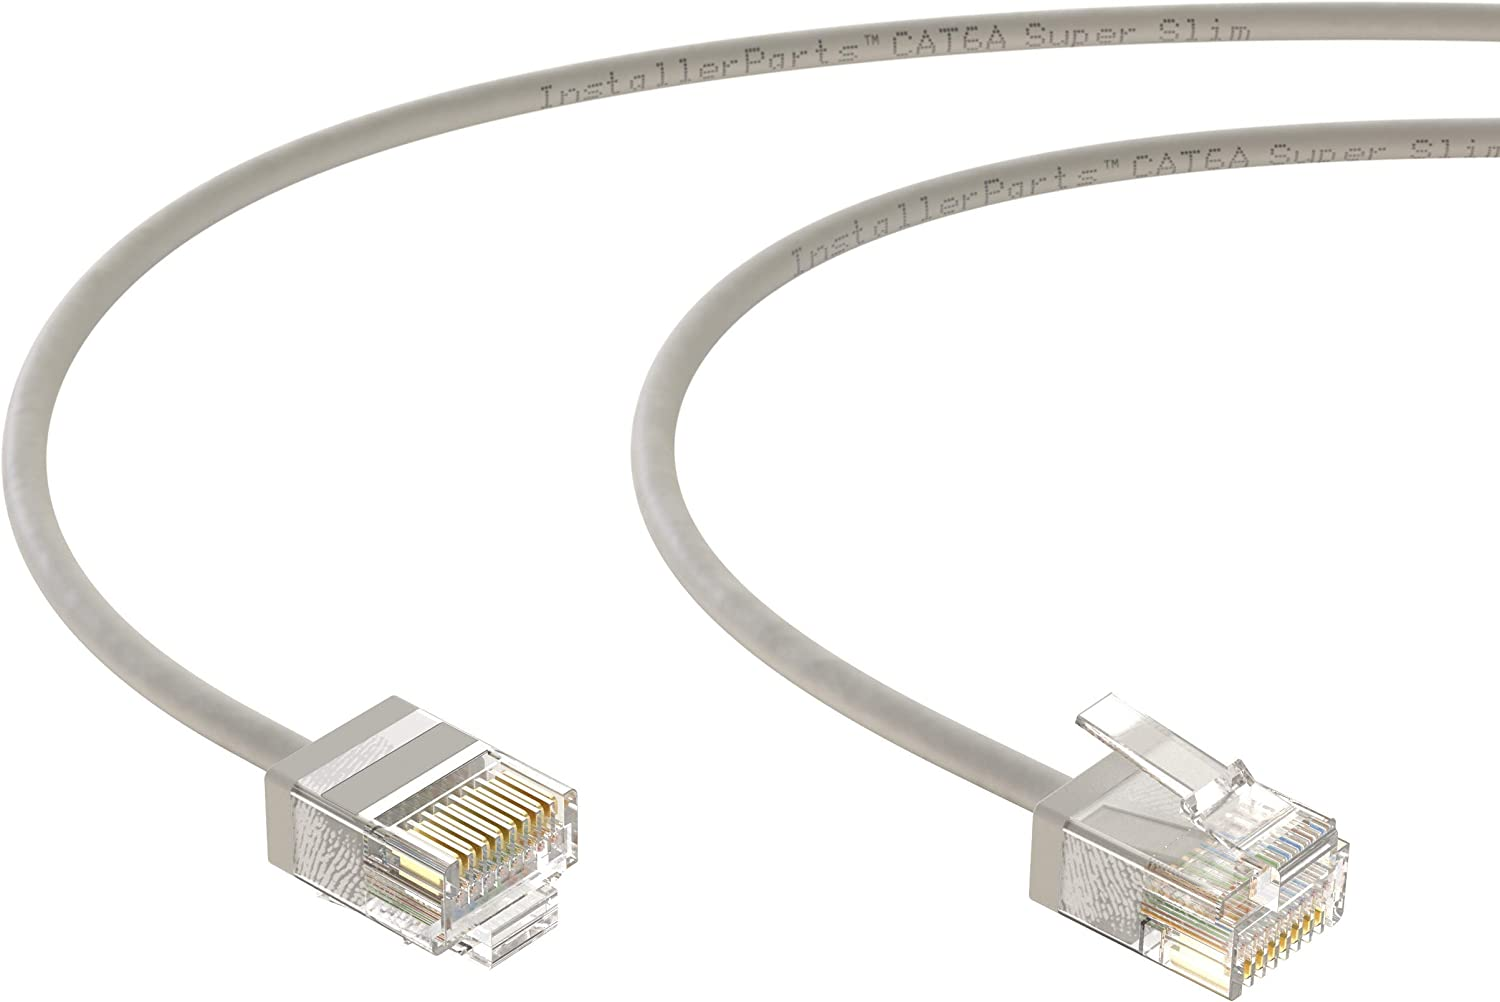 10Gigabit//Sec Network//High Speed Internet Cable 32AWG 550MHZ 50 Pack Professional Series InstallerParts Ethernet Cable CAT6A Super Slim Cable UTP 7 FT - Orange